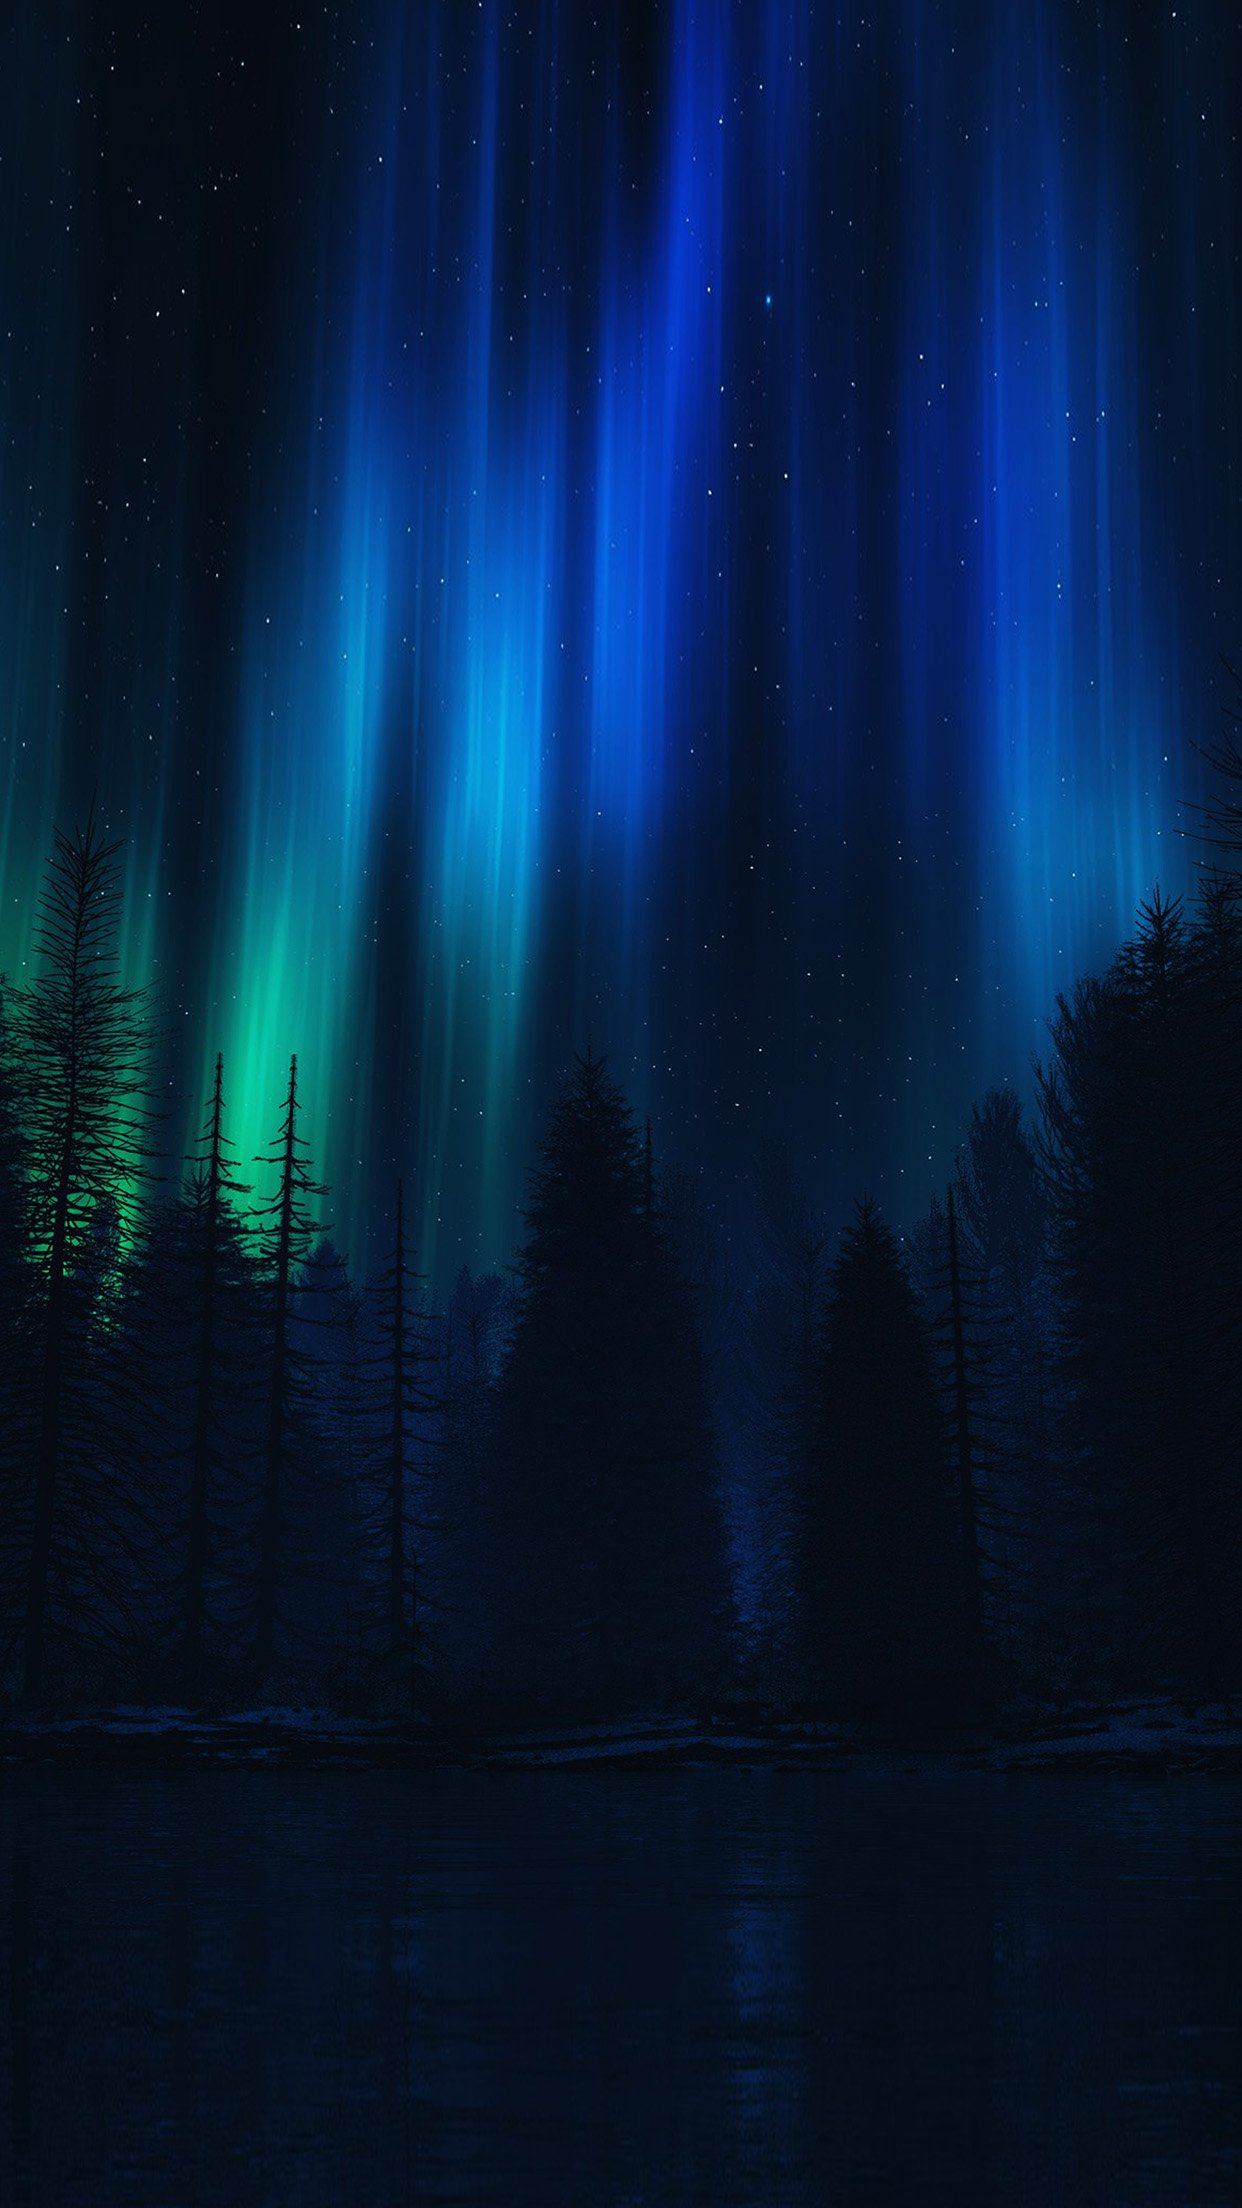 Most Inspiring Wallpaper Night Blue - Aurora-Night-Sky-Dark-Blue-Nature-Art  Snapshot.jpg